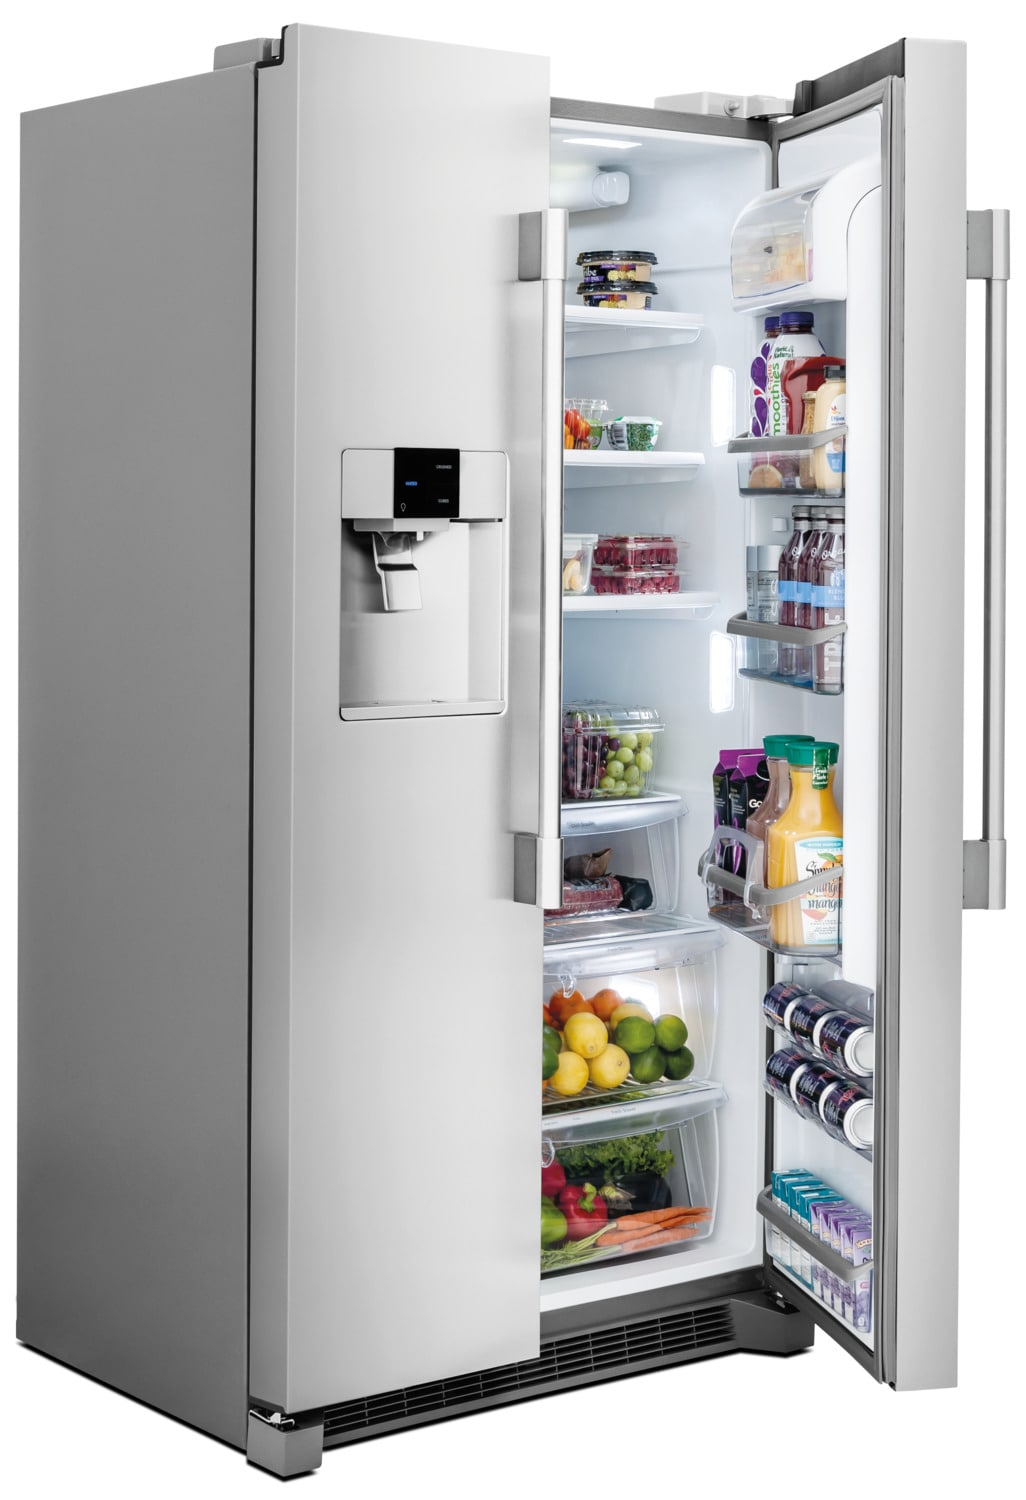 Frigidaire Professional 22 6 Cu Ft Side By Side